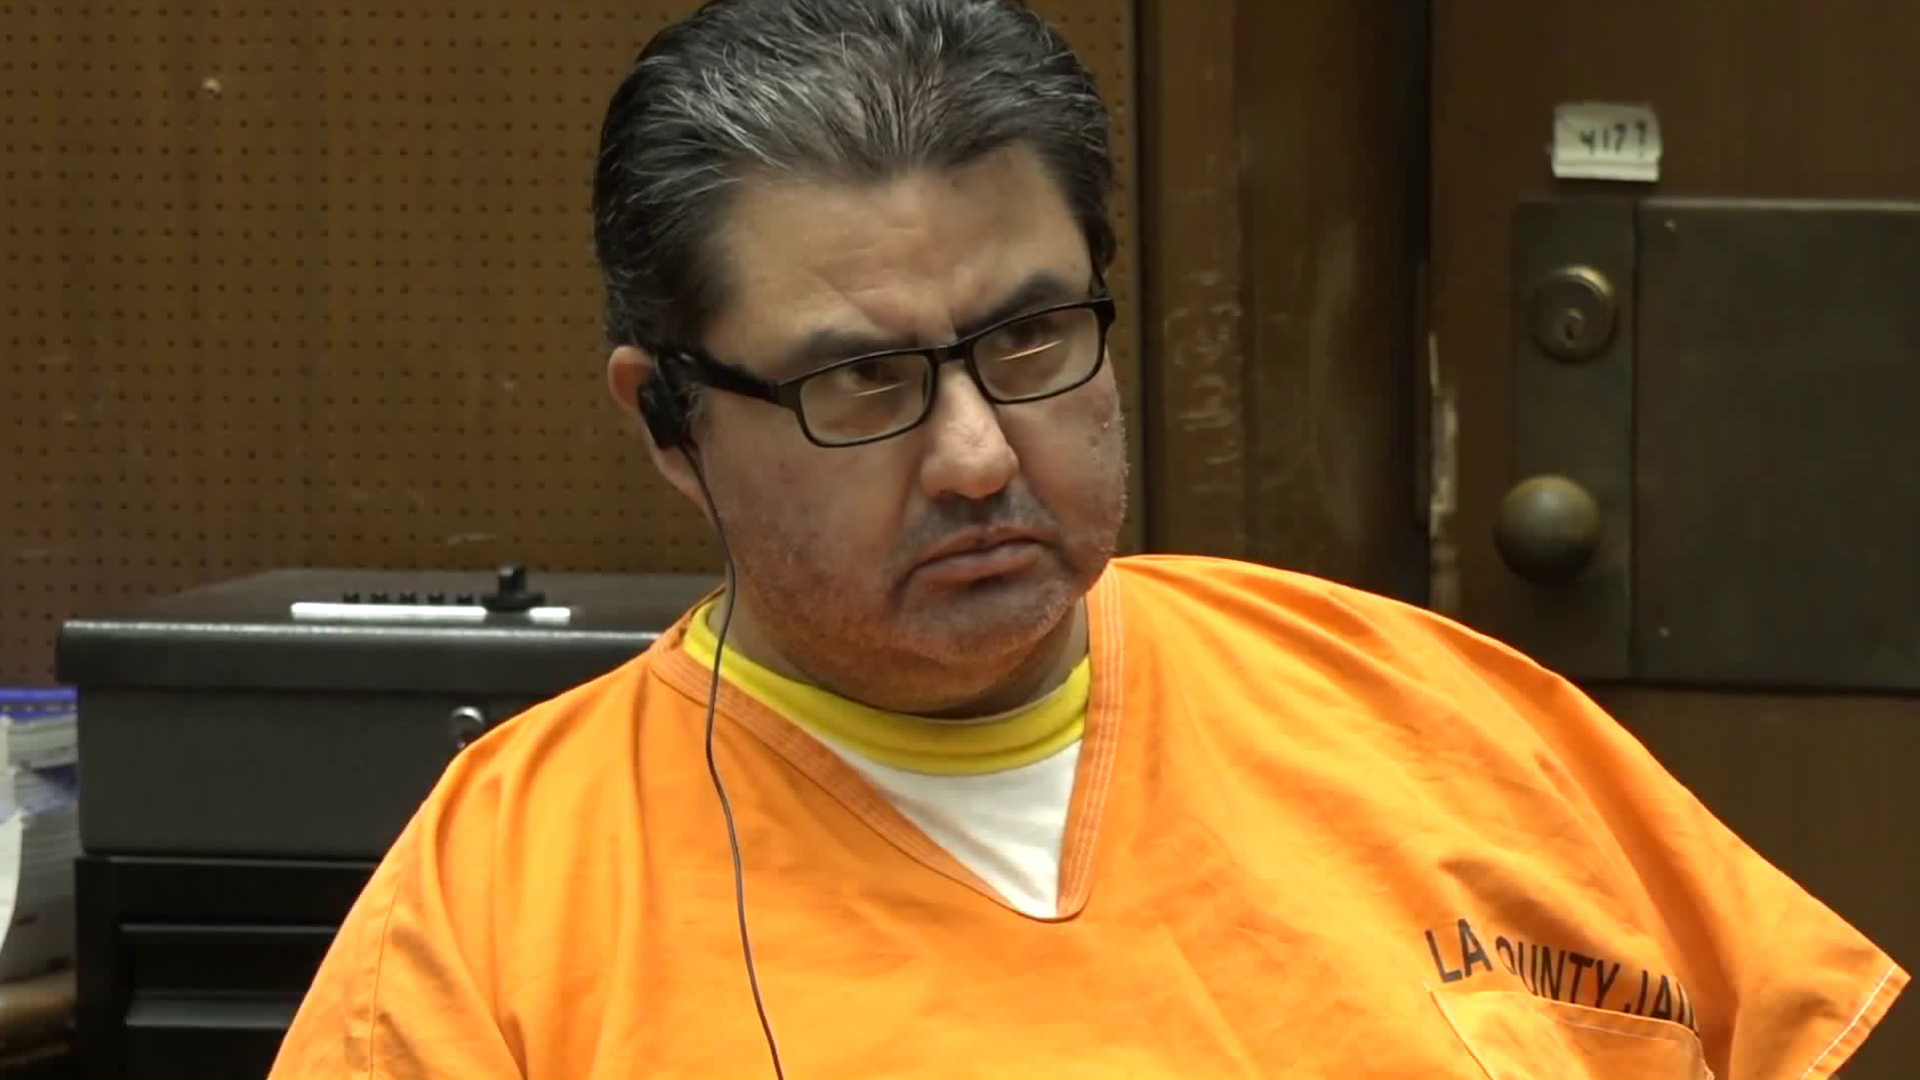 Naasón Joaquín García appears for a bail hearing in a downtown Los Angeles courtroom on July 16, 2019. (Credit: KTLA)